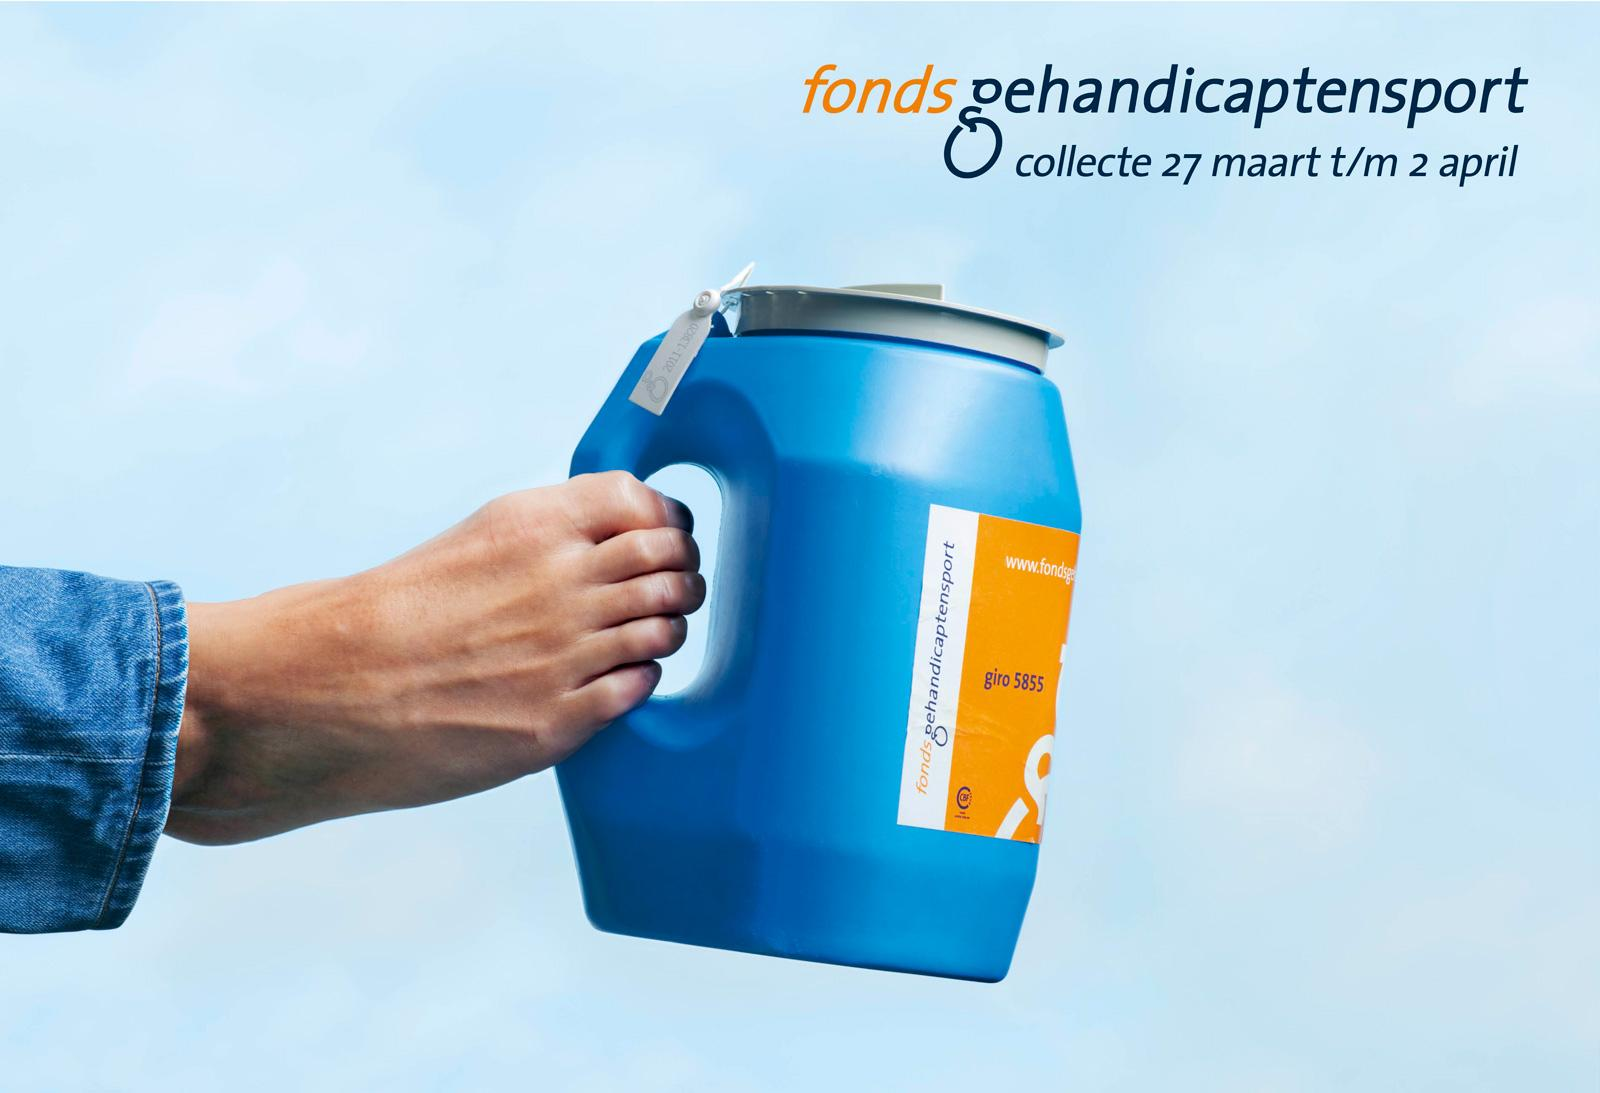 Fonds Gehandicaptensport Outdoor Ad -  Helping Foot